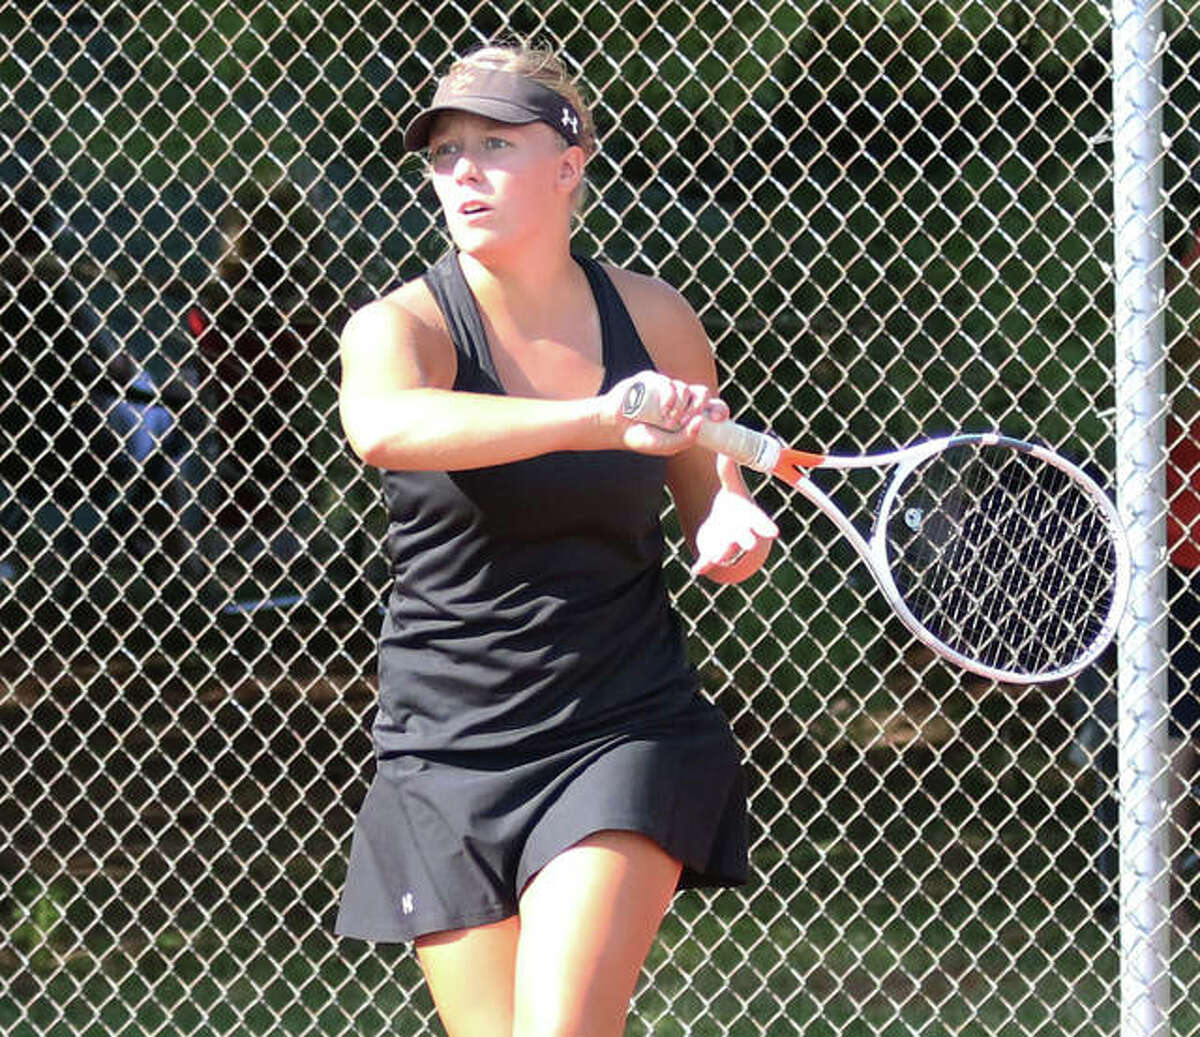 Edwardsville junior Hannah Colbert watches her shot during a No. 2 singles match against Jersey on Friday at the EHS Courts in Edwardsville.